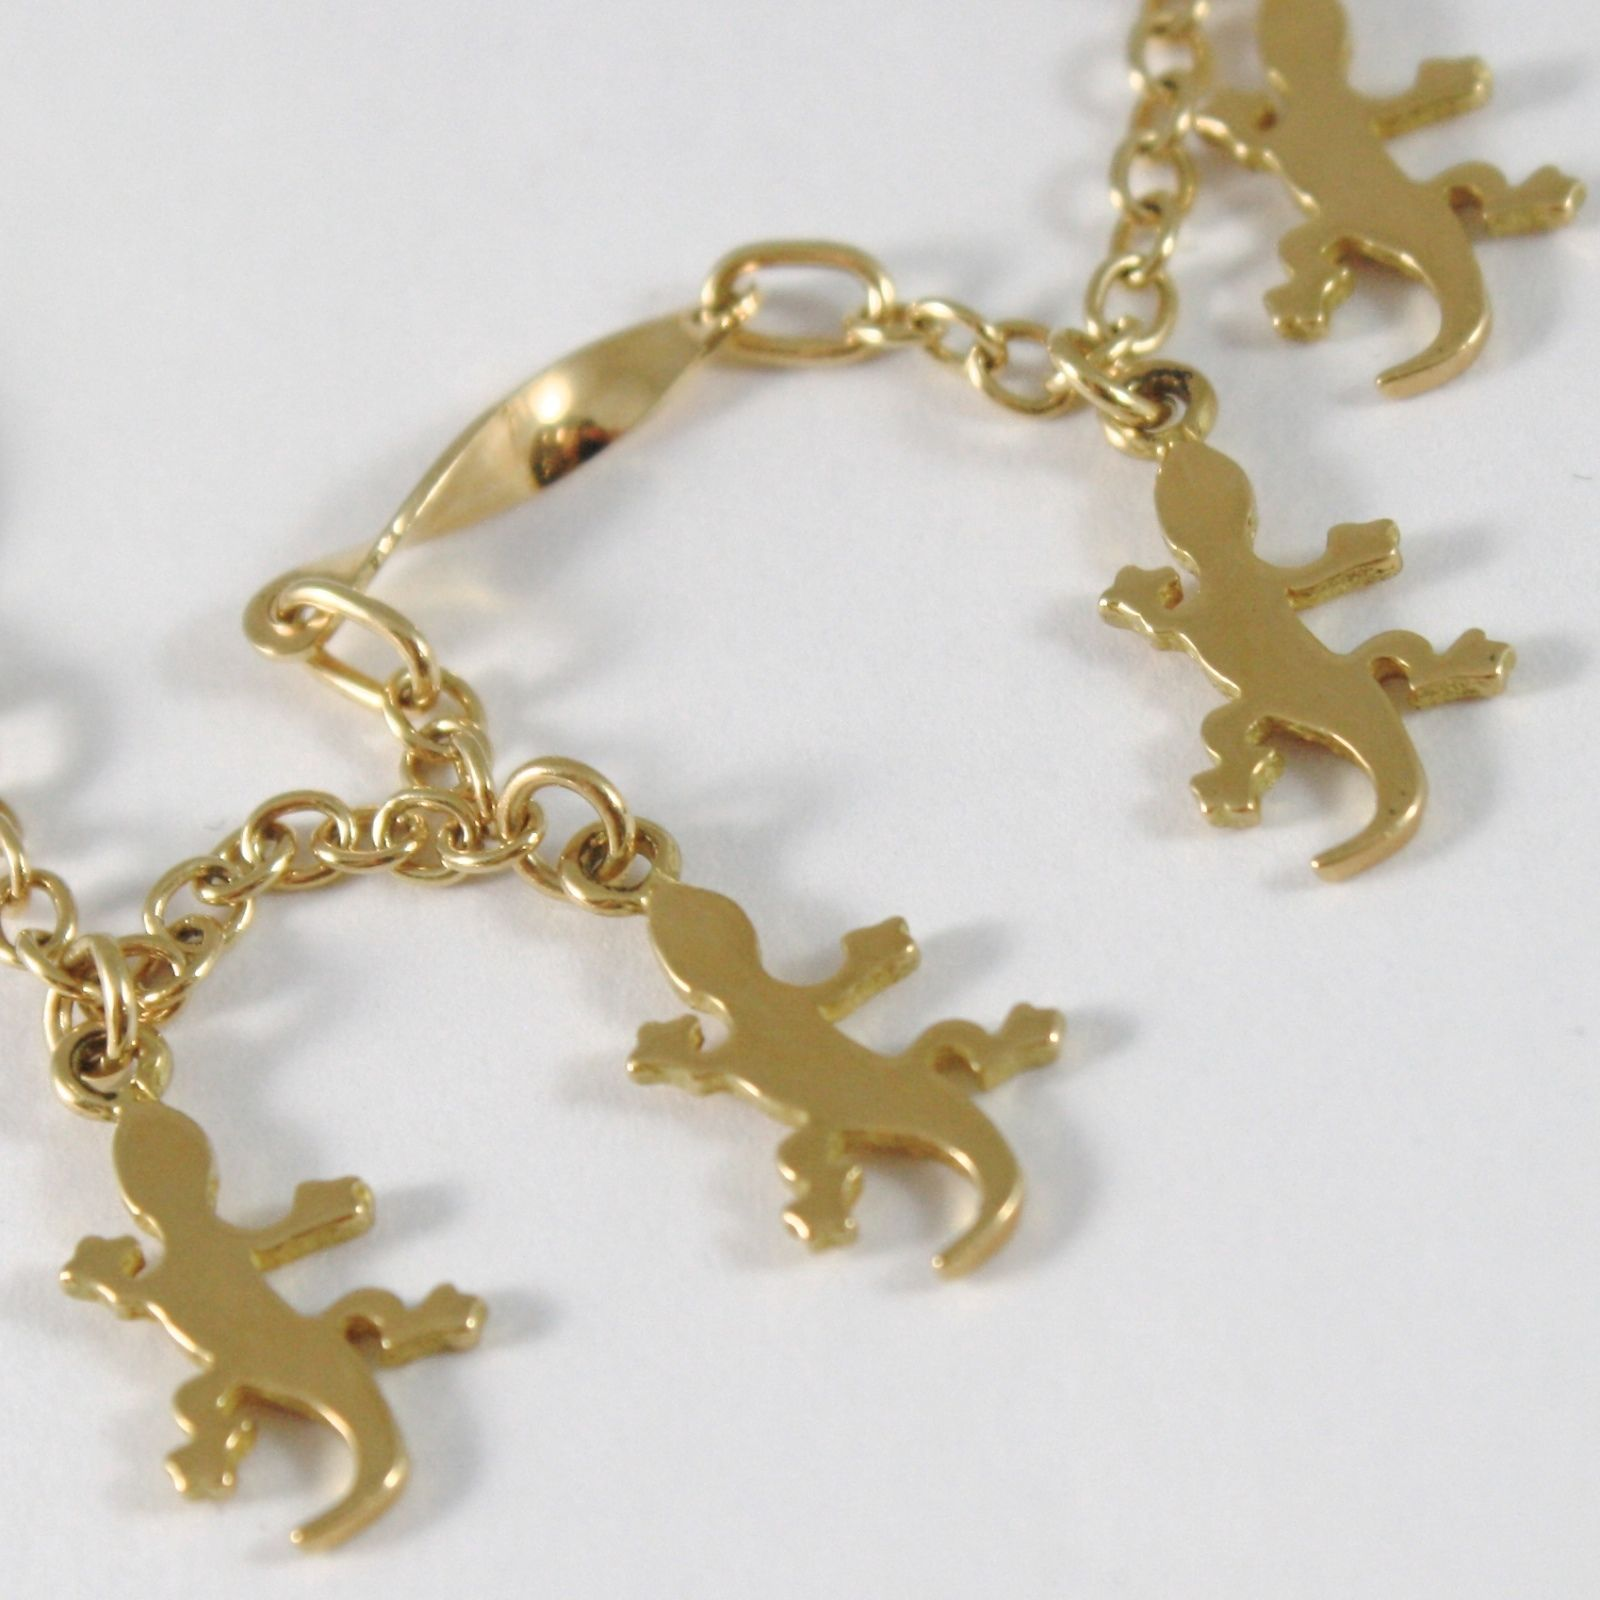 BRACELET YELLOW GOLD 750 18K WITH GECKO PENDANT, PENDANTS, ROLO' AND SPIRAL